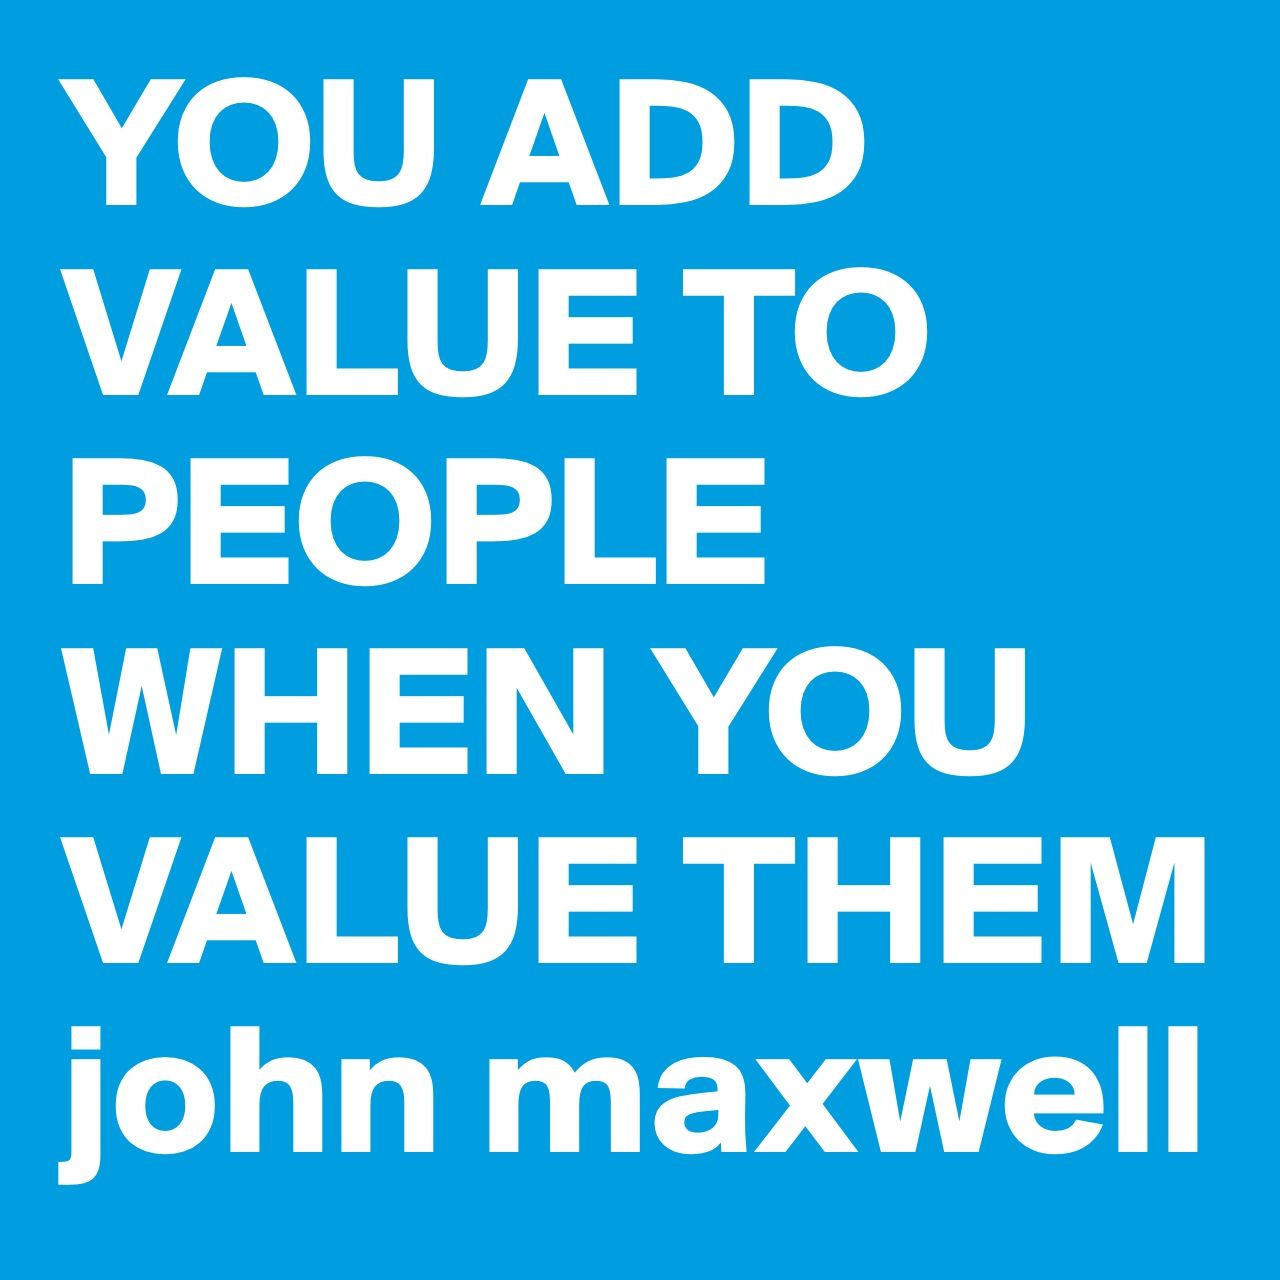 Excellent John Maxwell Quote. A True Mantra For Customer Service And  Business Owners!  Excellent Customer Service